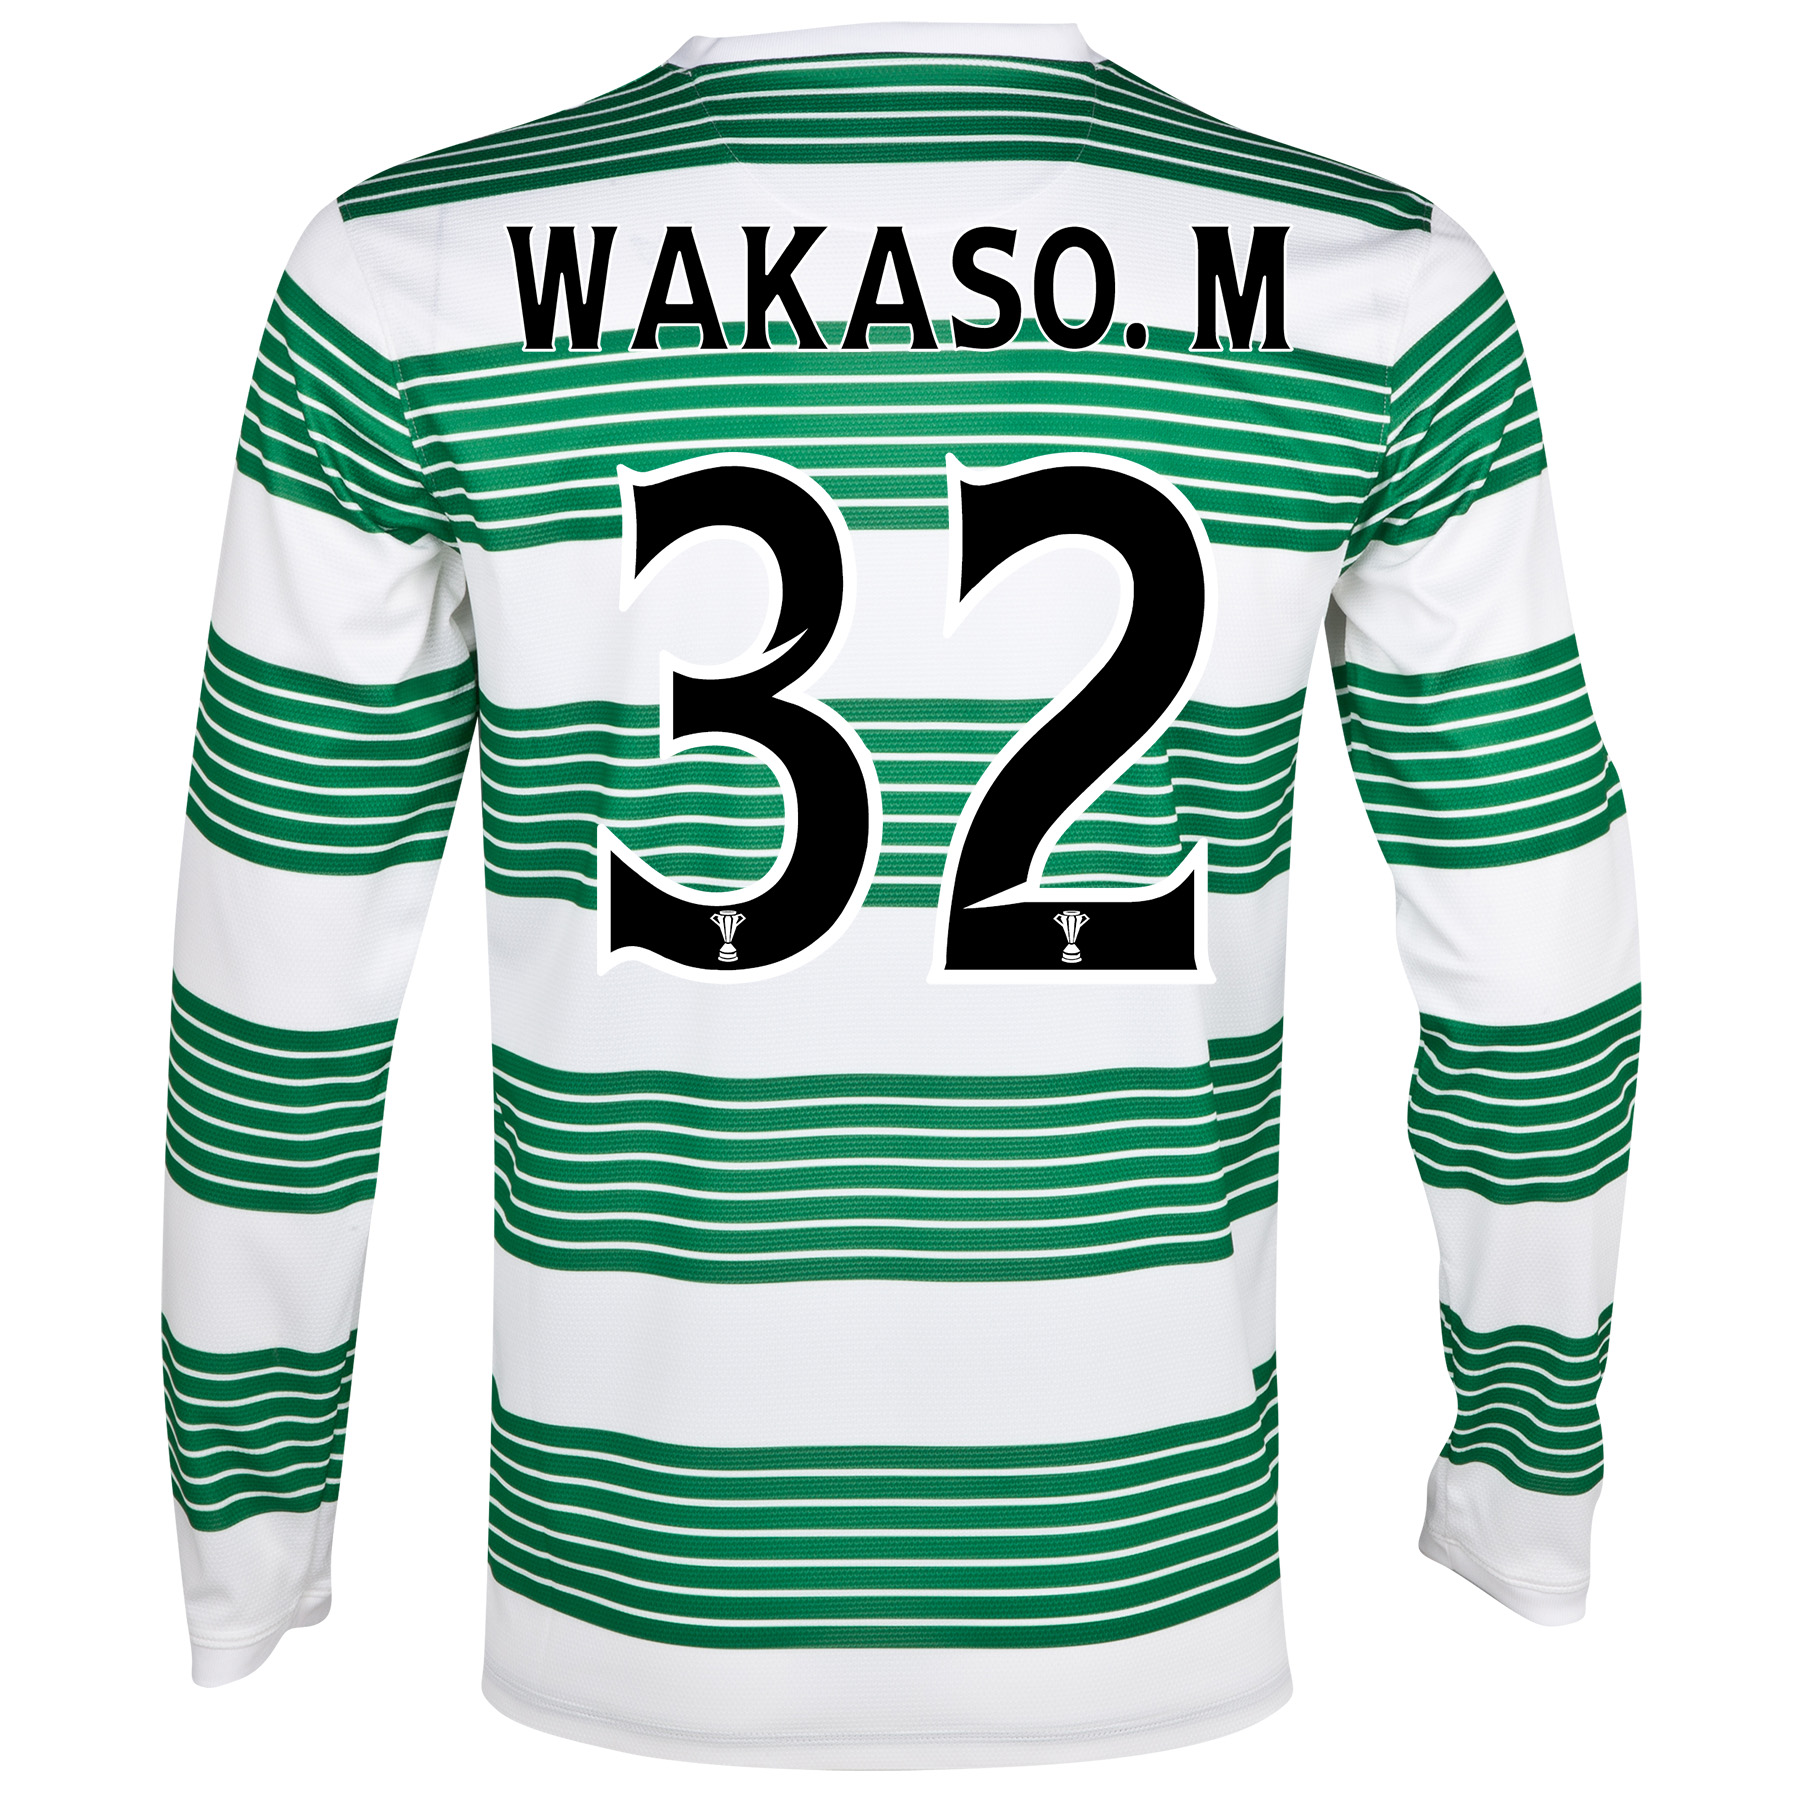 Celtic Home Shirt 2013/15 - L/S- Unsponsored with Wakaso.M 32 printing